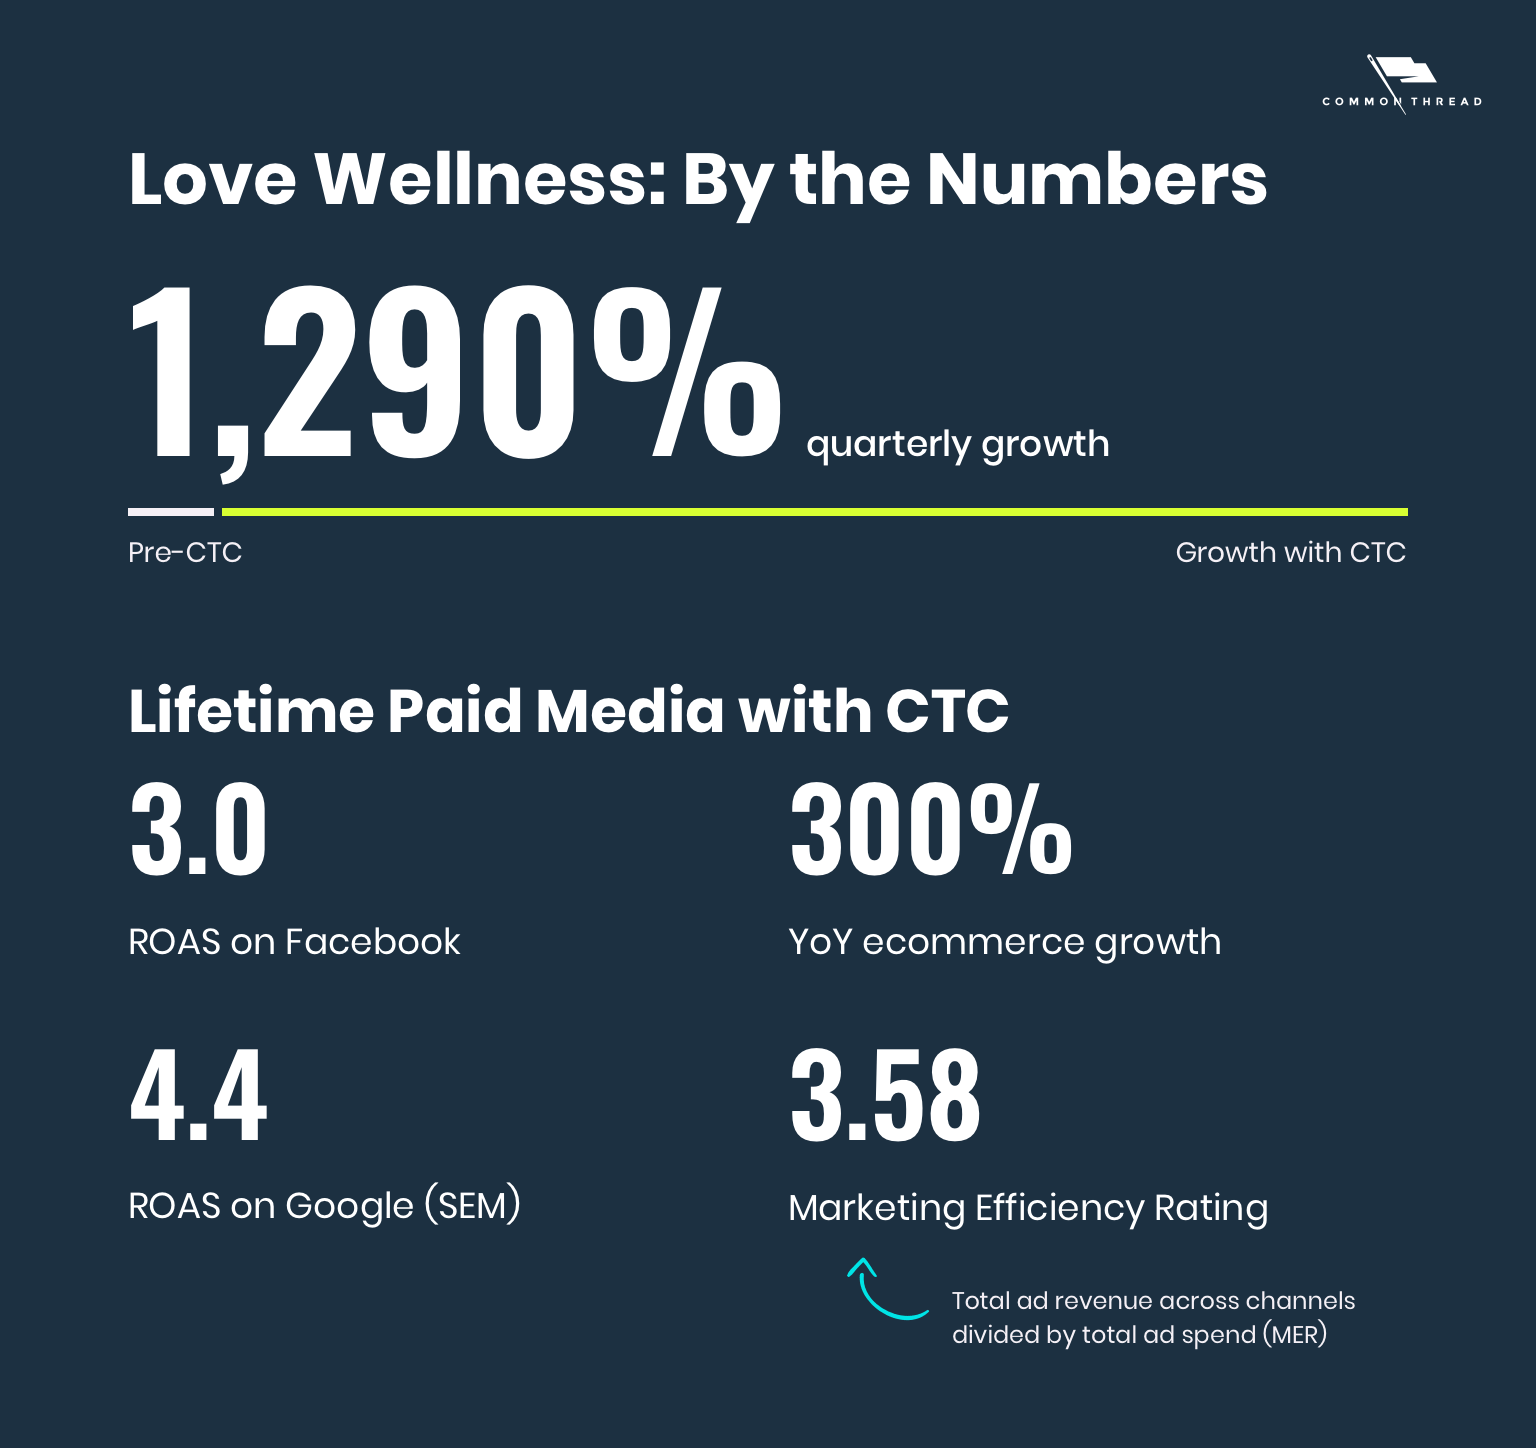 Love Wellness: By the Numbers